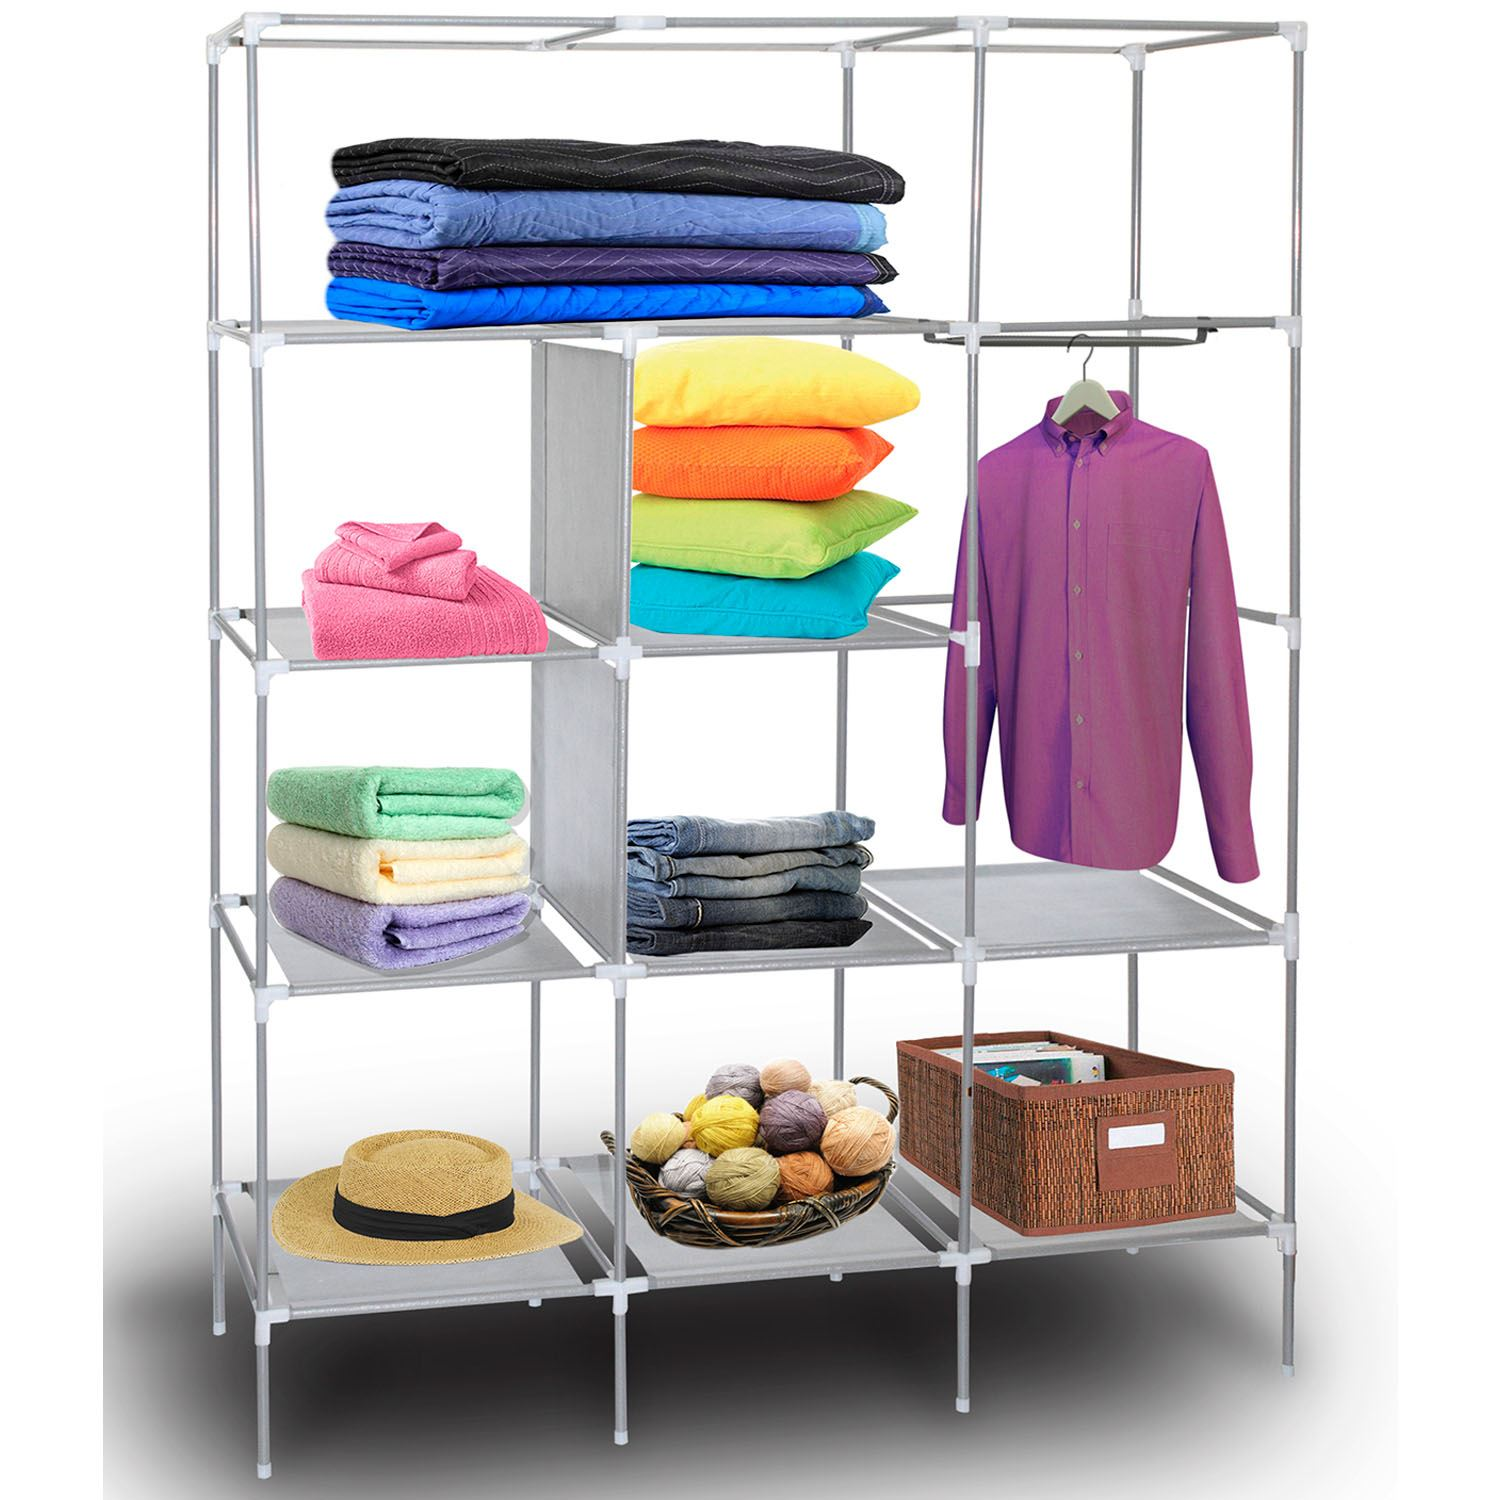 69-034-Portable-Closet-Storage-Organizer-Clothes-Wardrobe-Shoe-Rack-with-Shelves